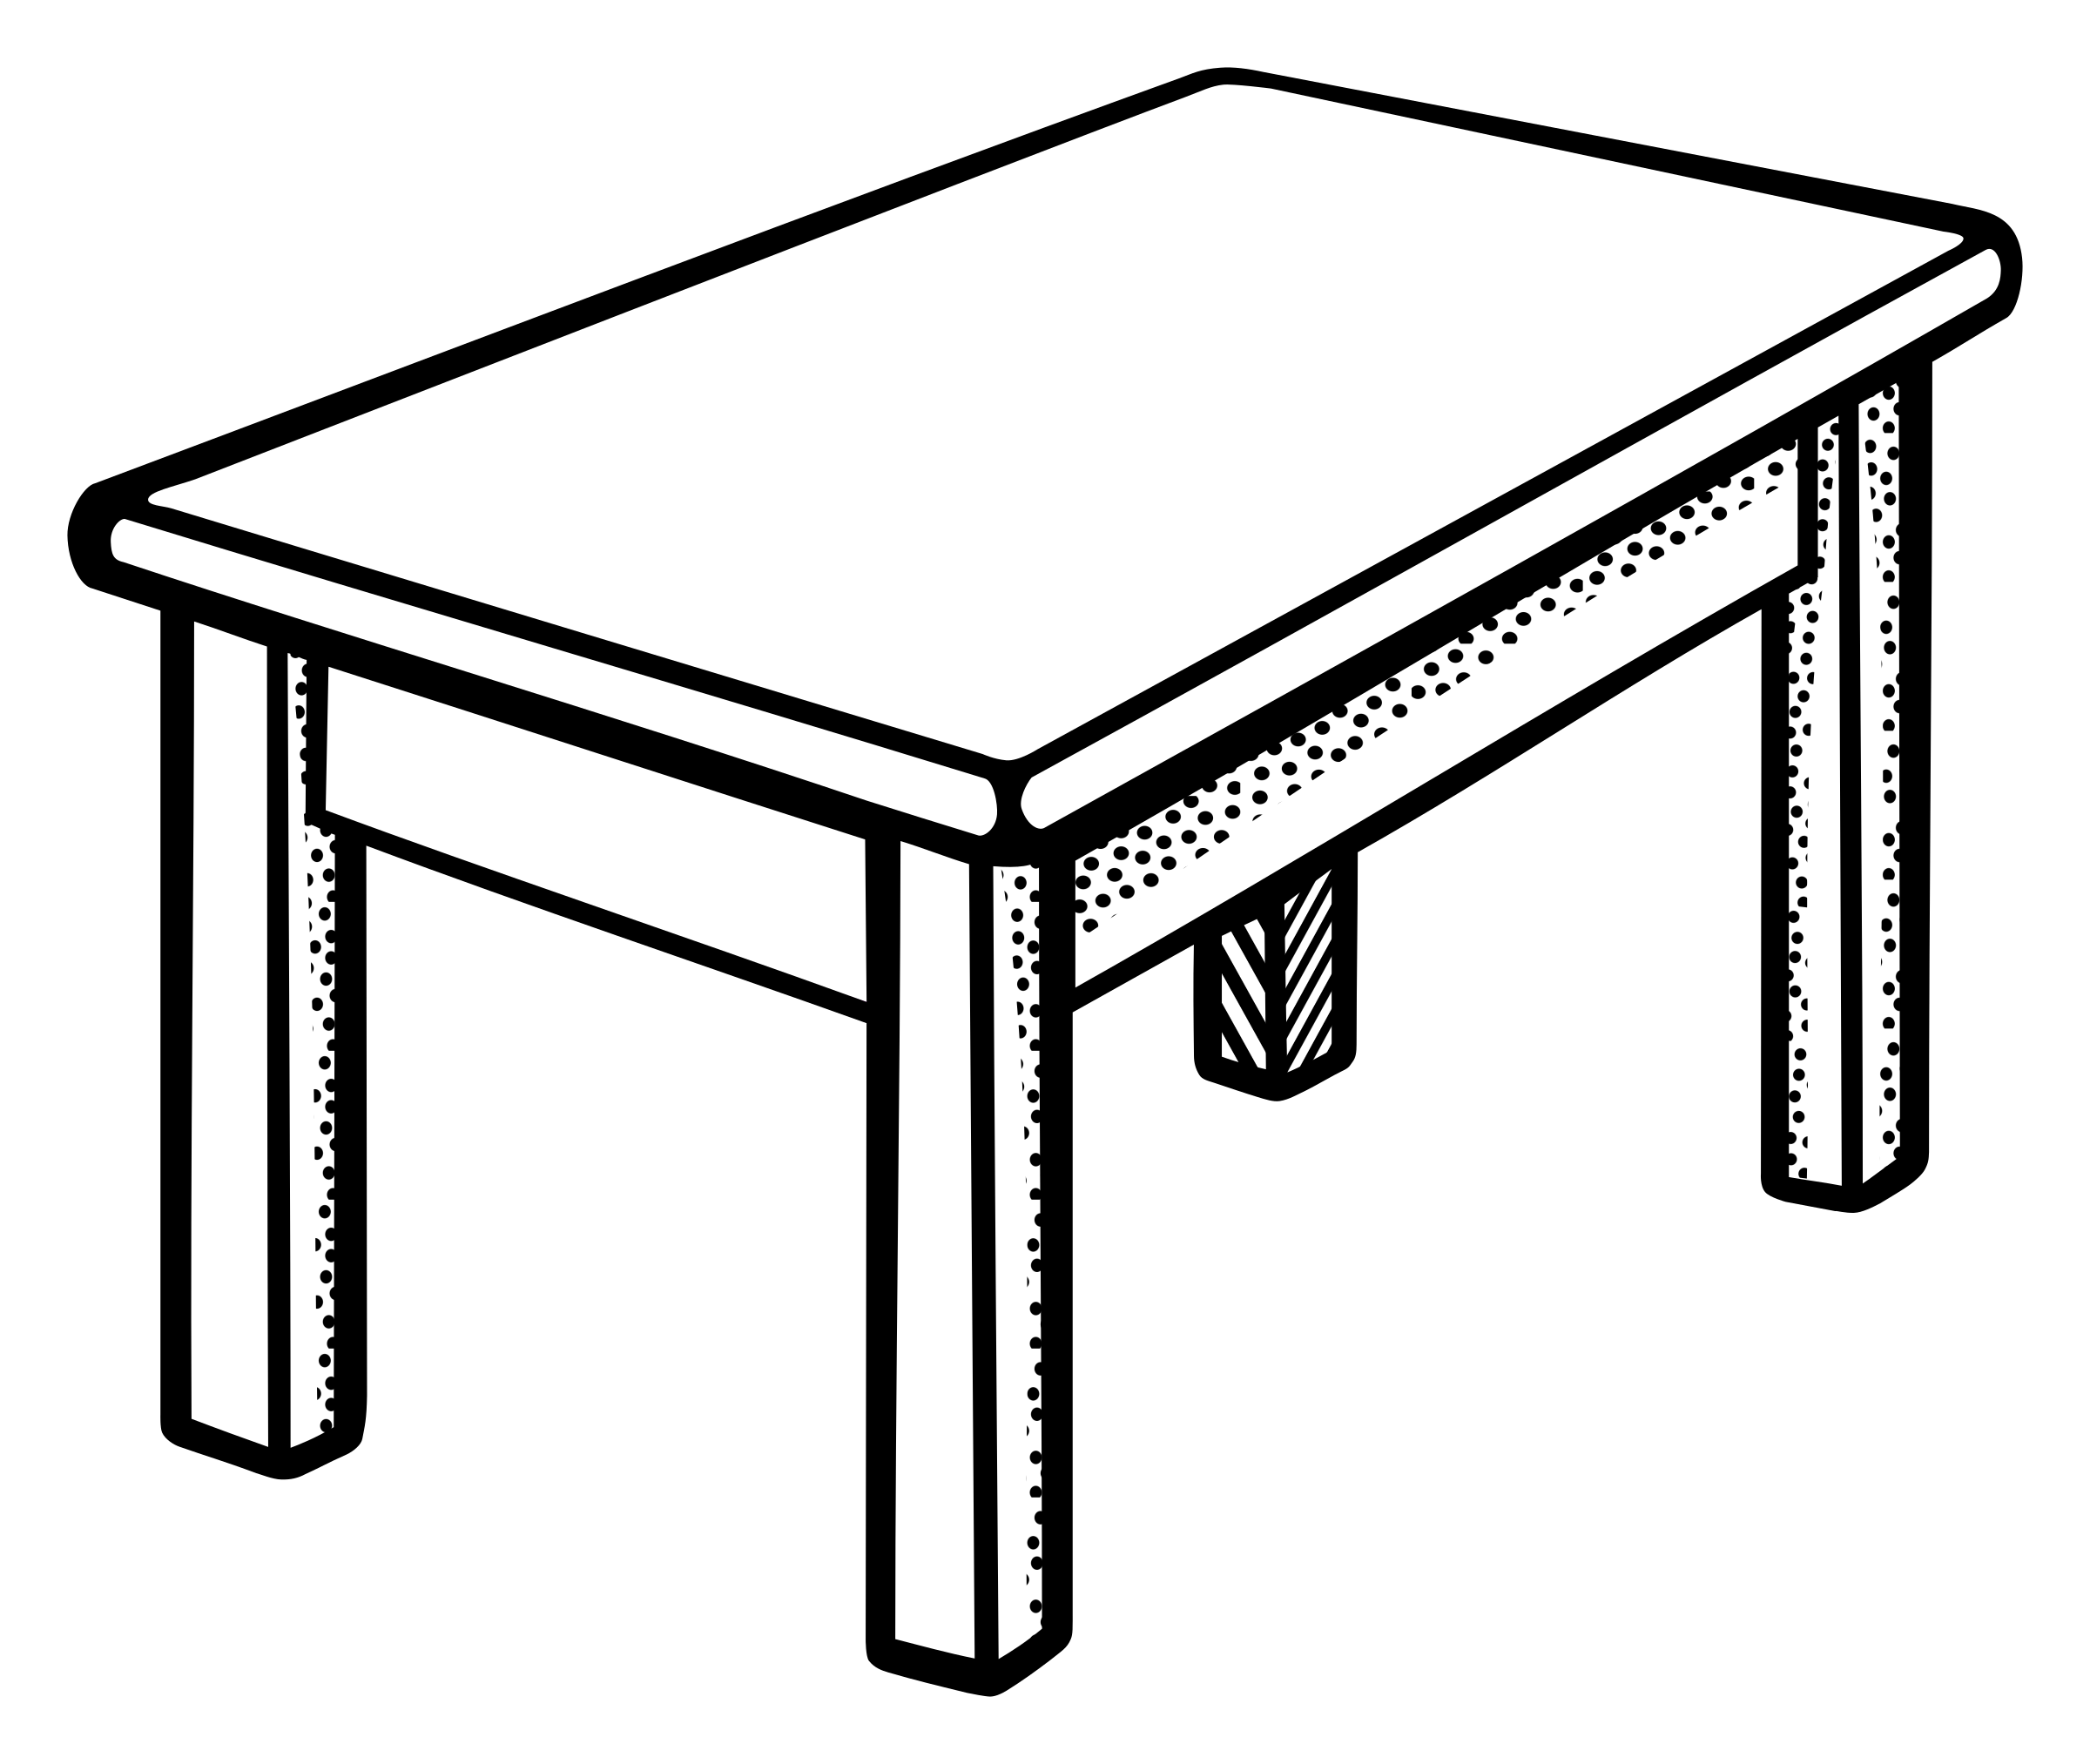 Clipart bed black and white. Pretty table illustration of